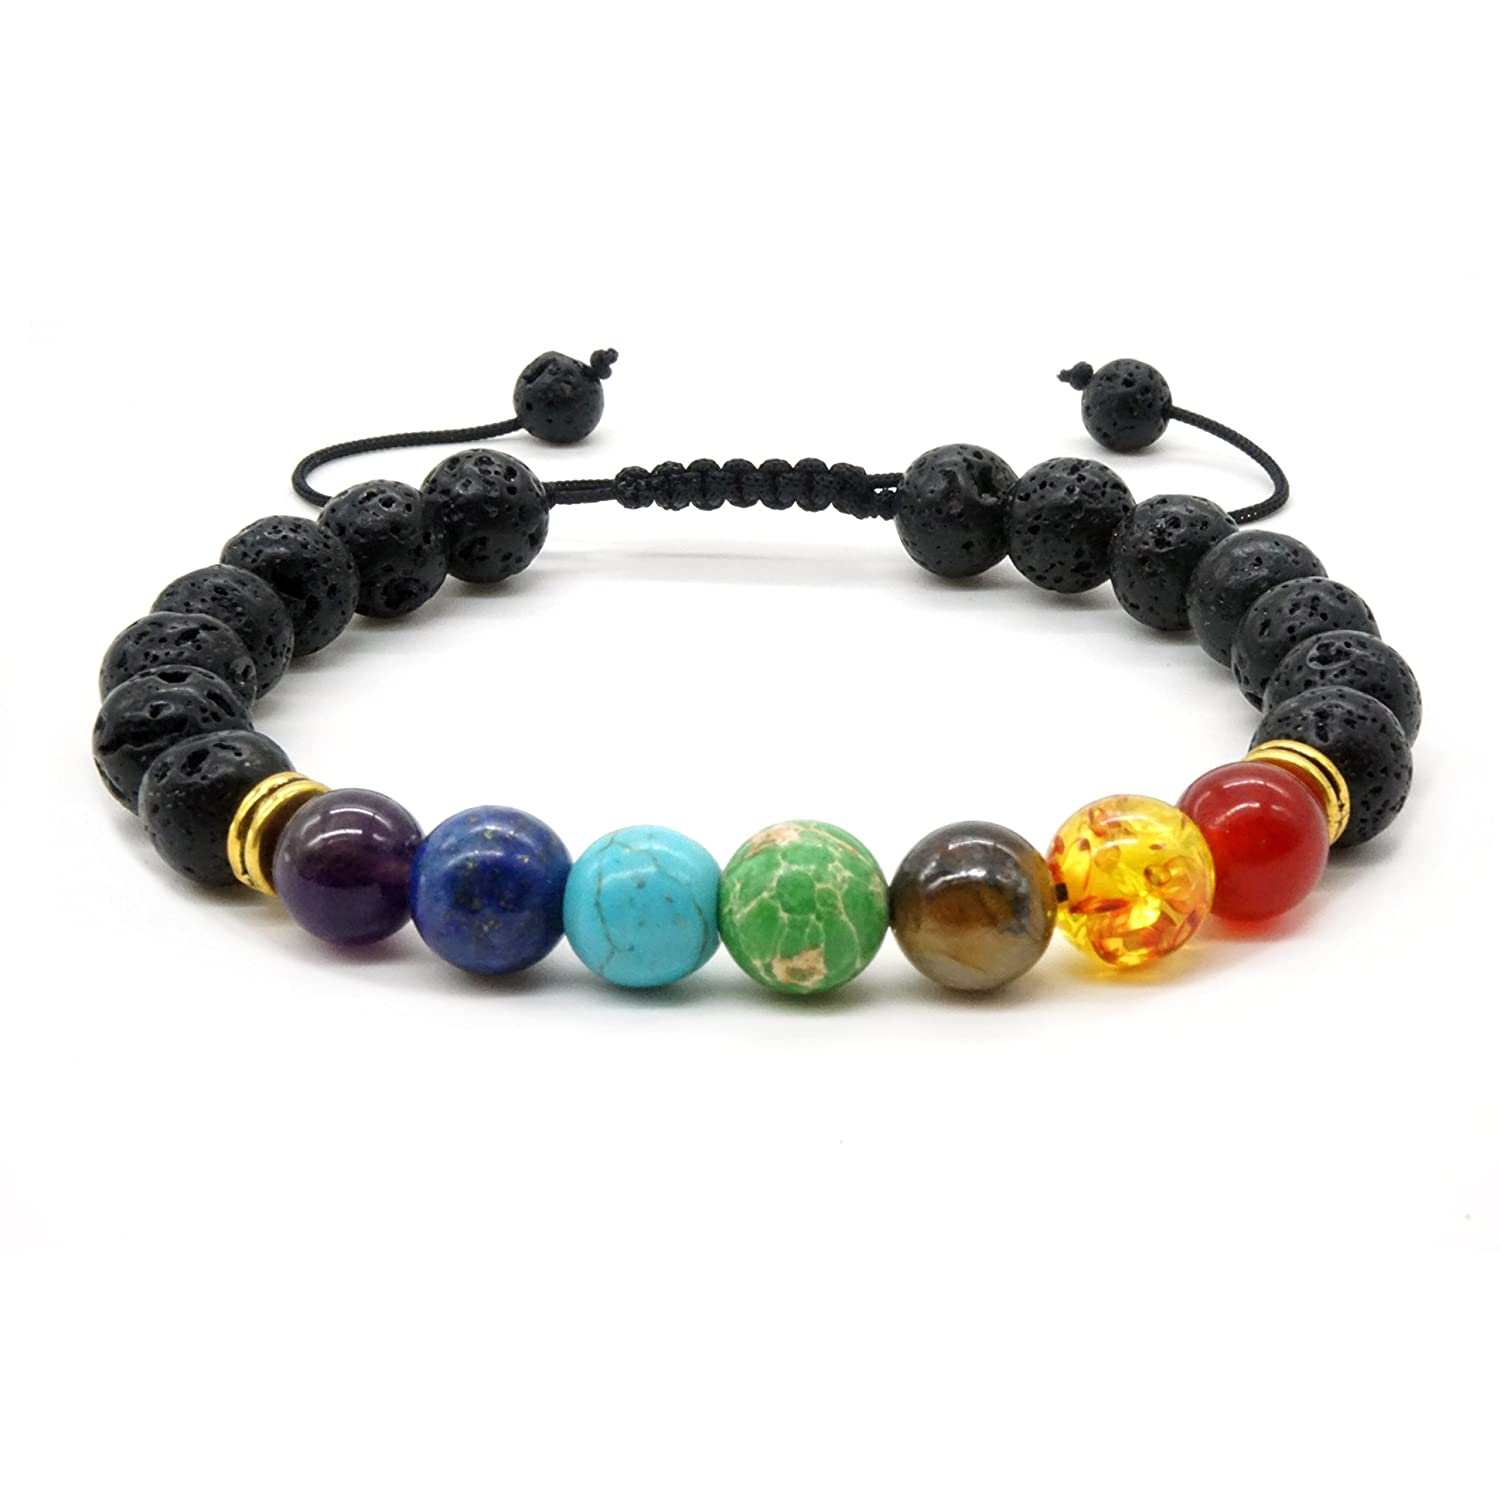 Mayting 7 Chakra Lava Stone Braided Bracelet Tiger Eye Stone Bracelet for Men and Women Healing Energy Adjustable Bracelet Bangle BKL002